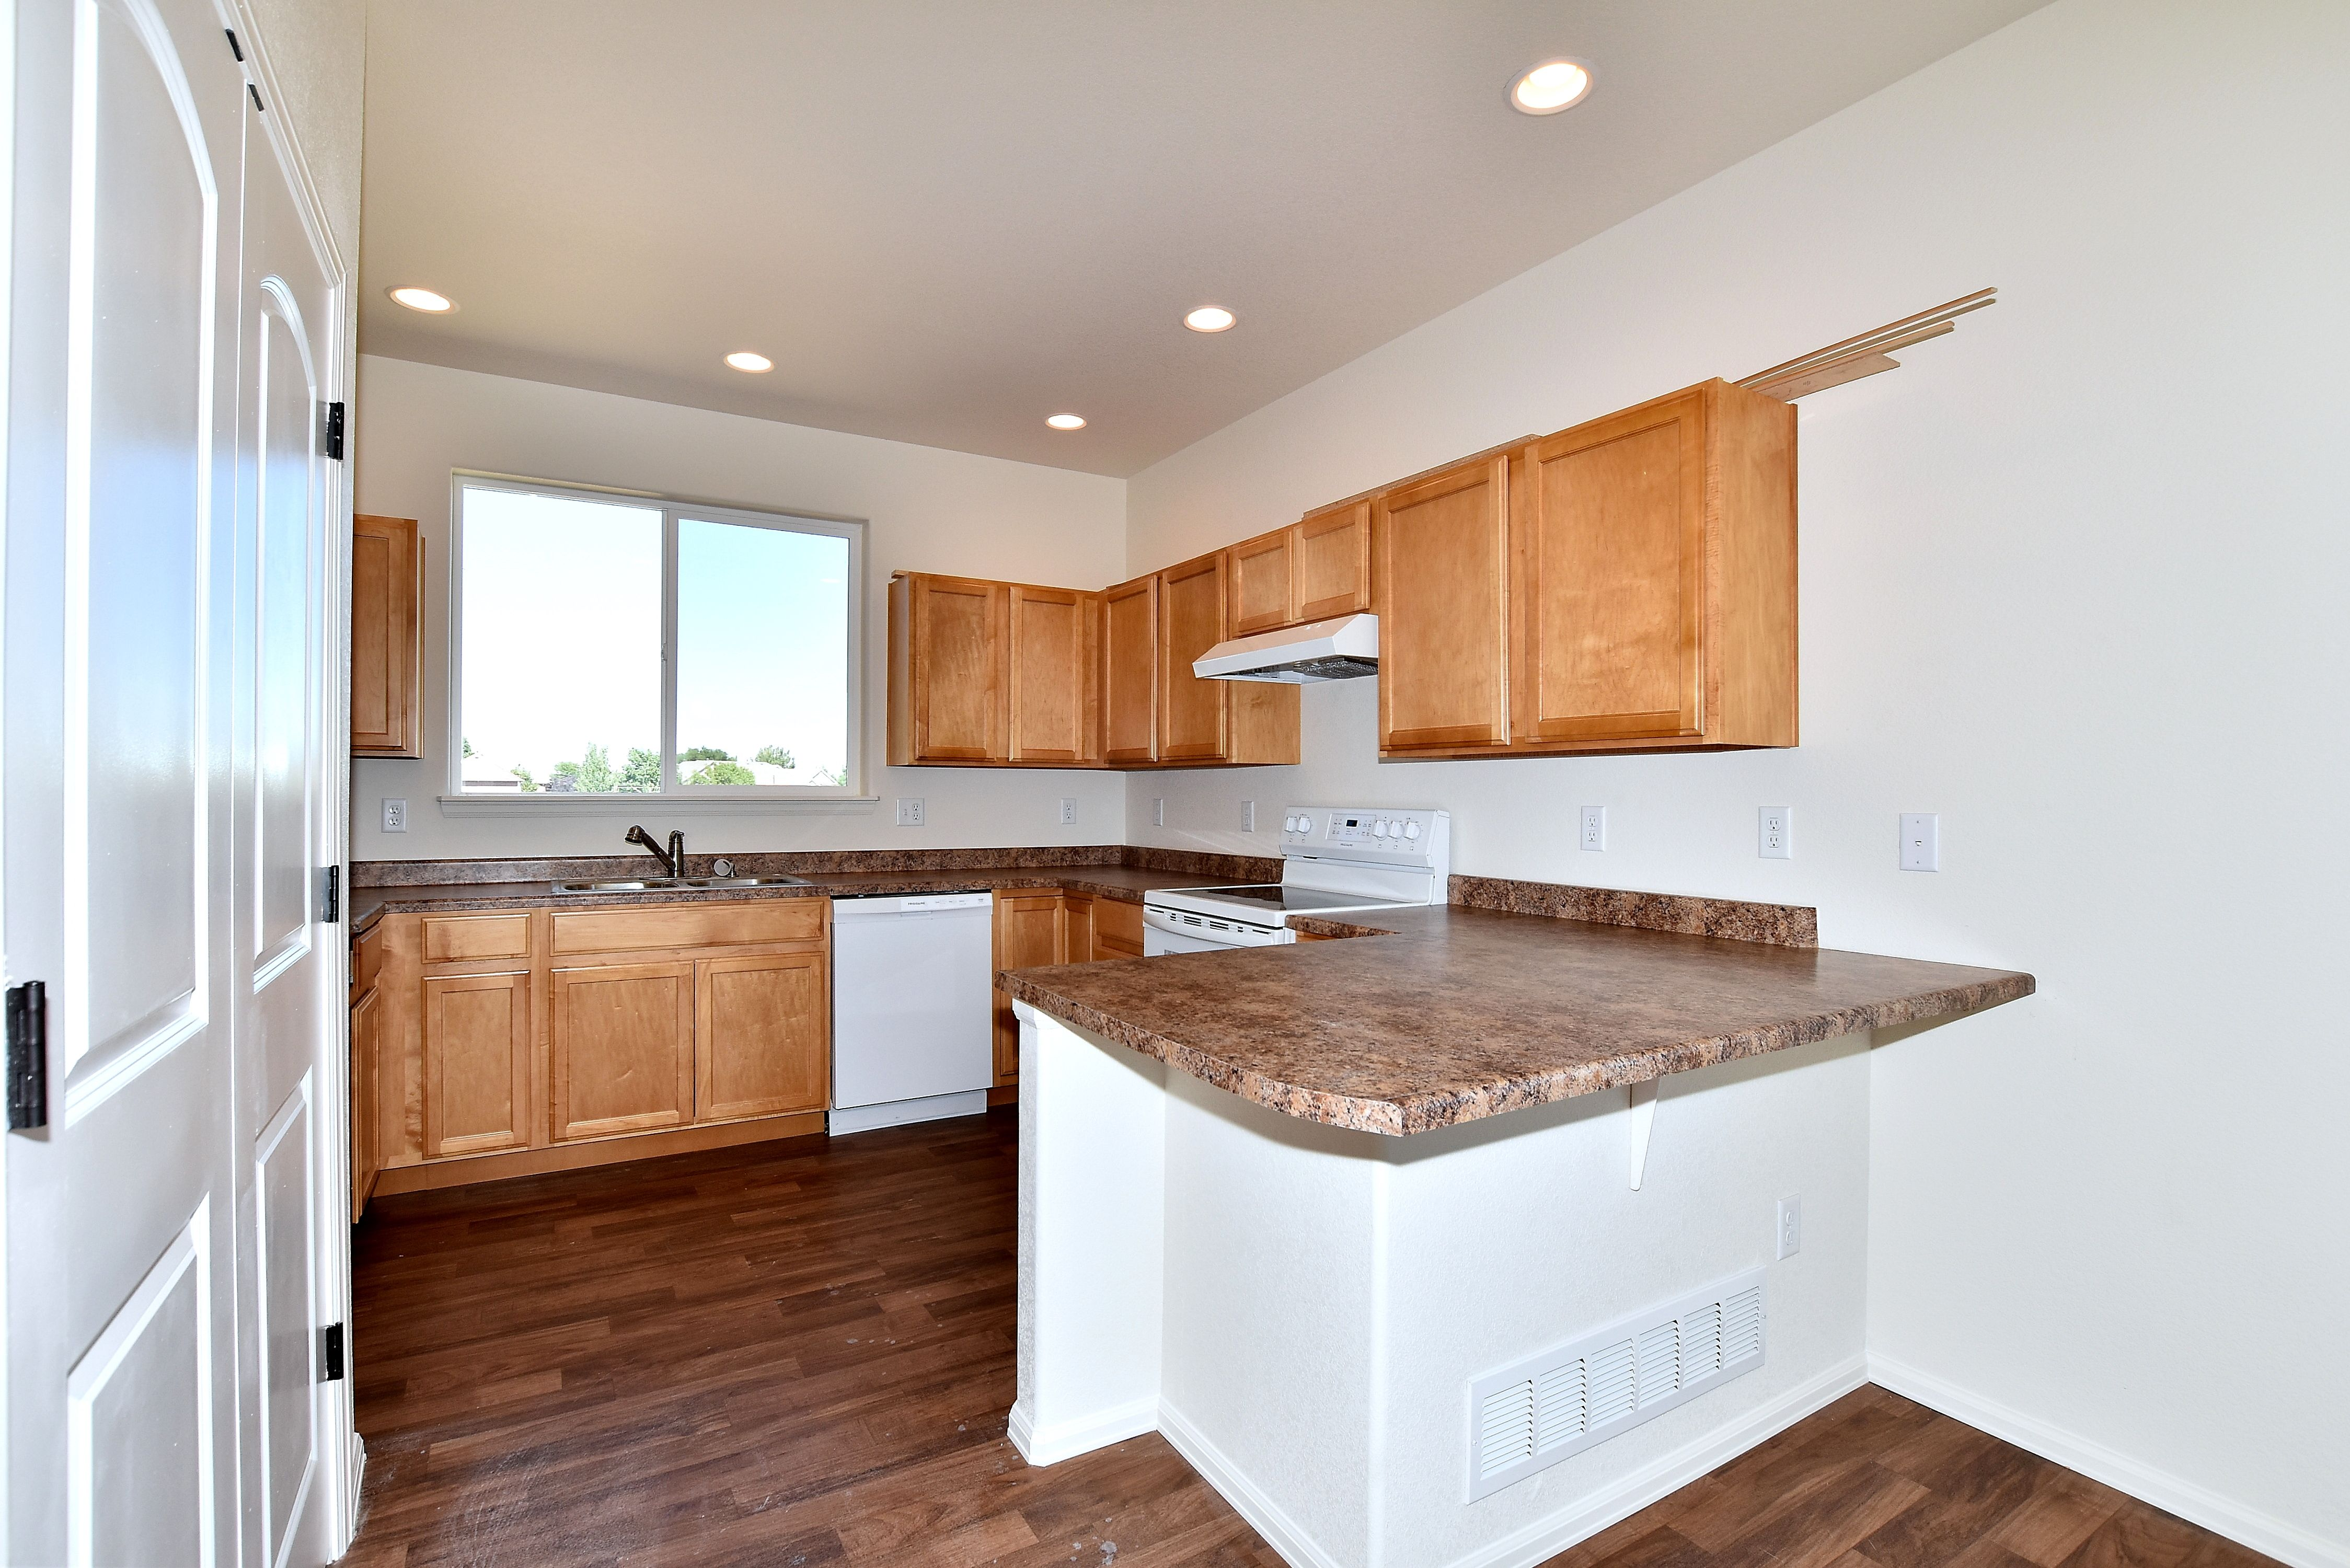 Kitchen featured in the California By Journey Homes in Greeley, CO